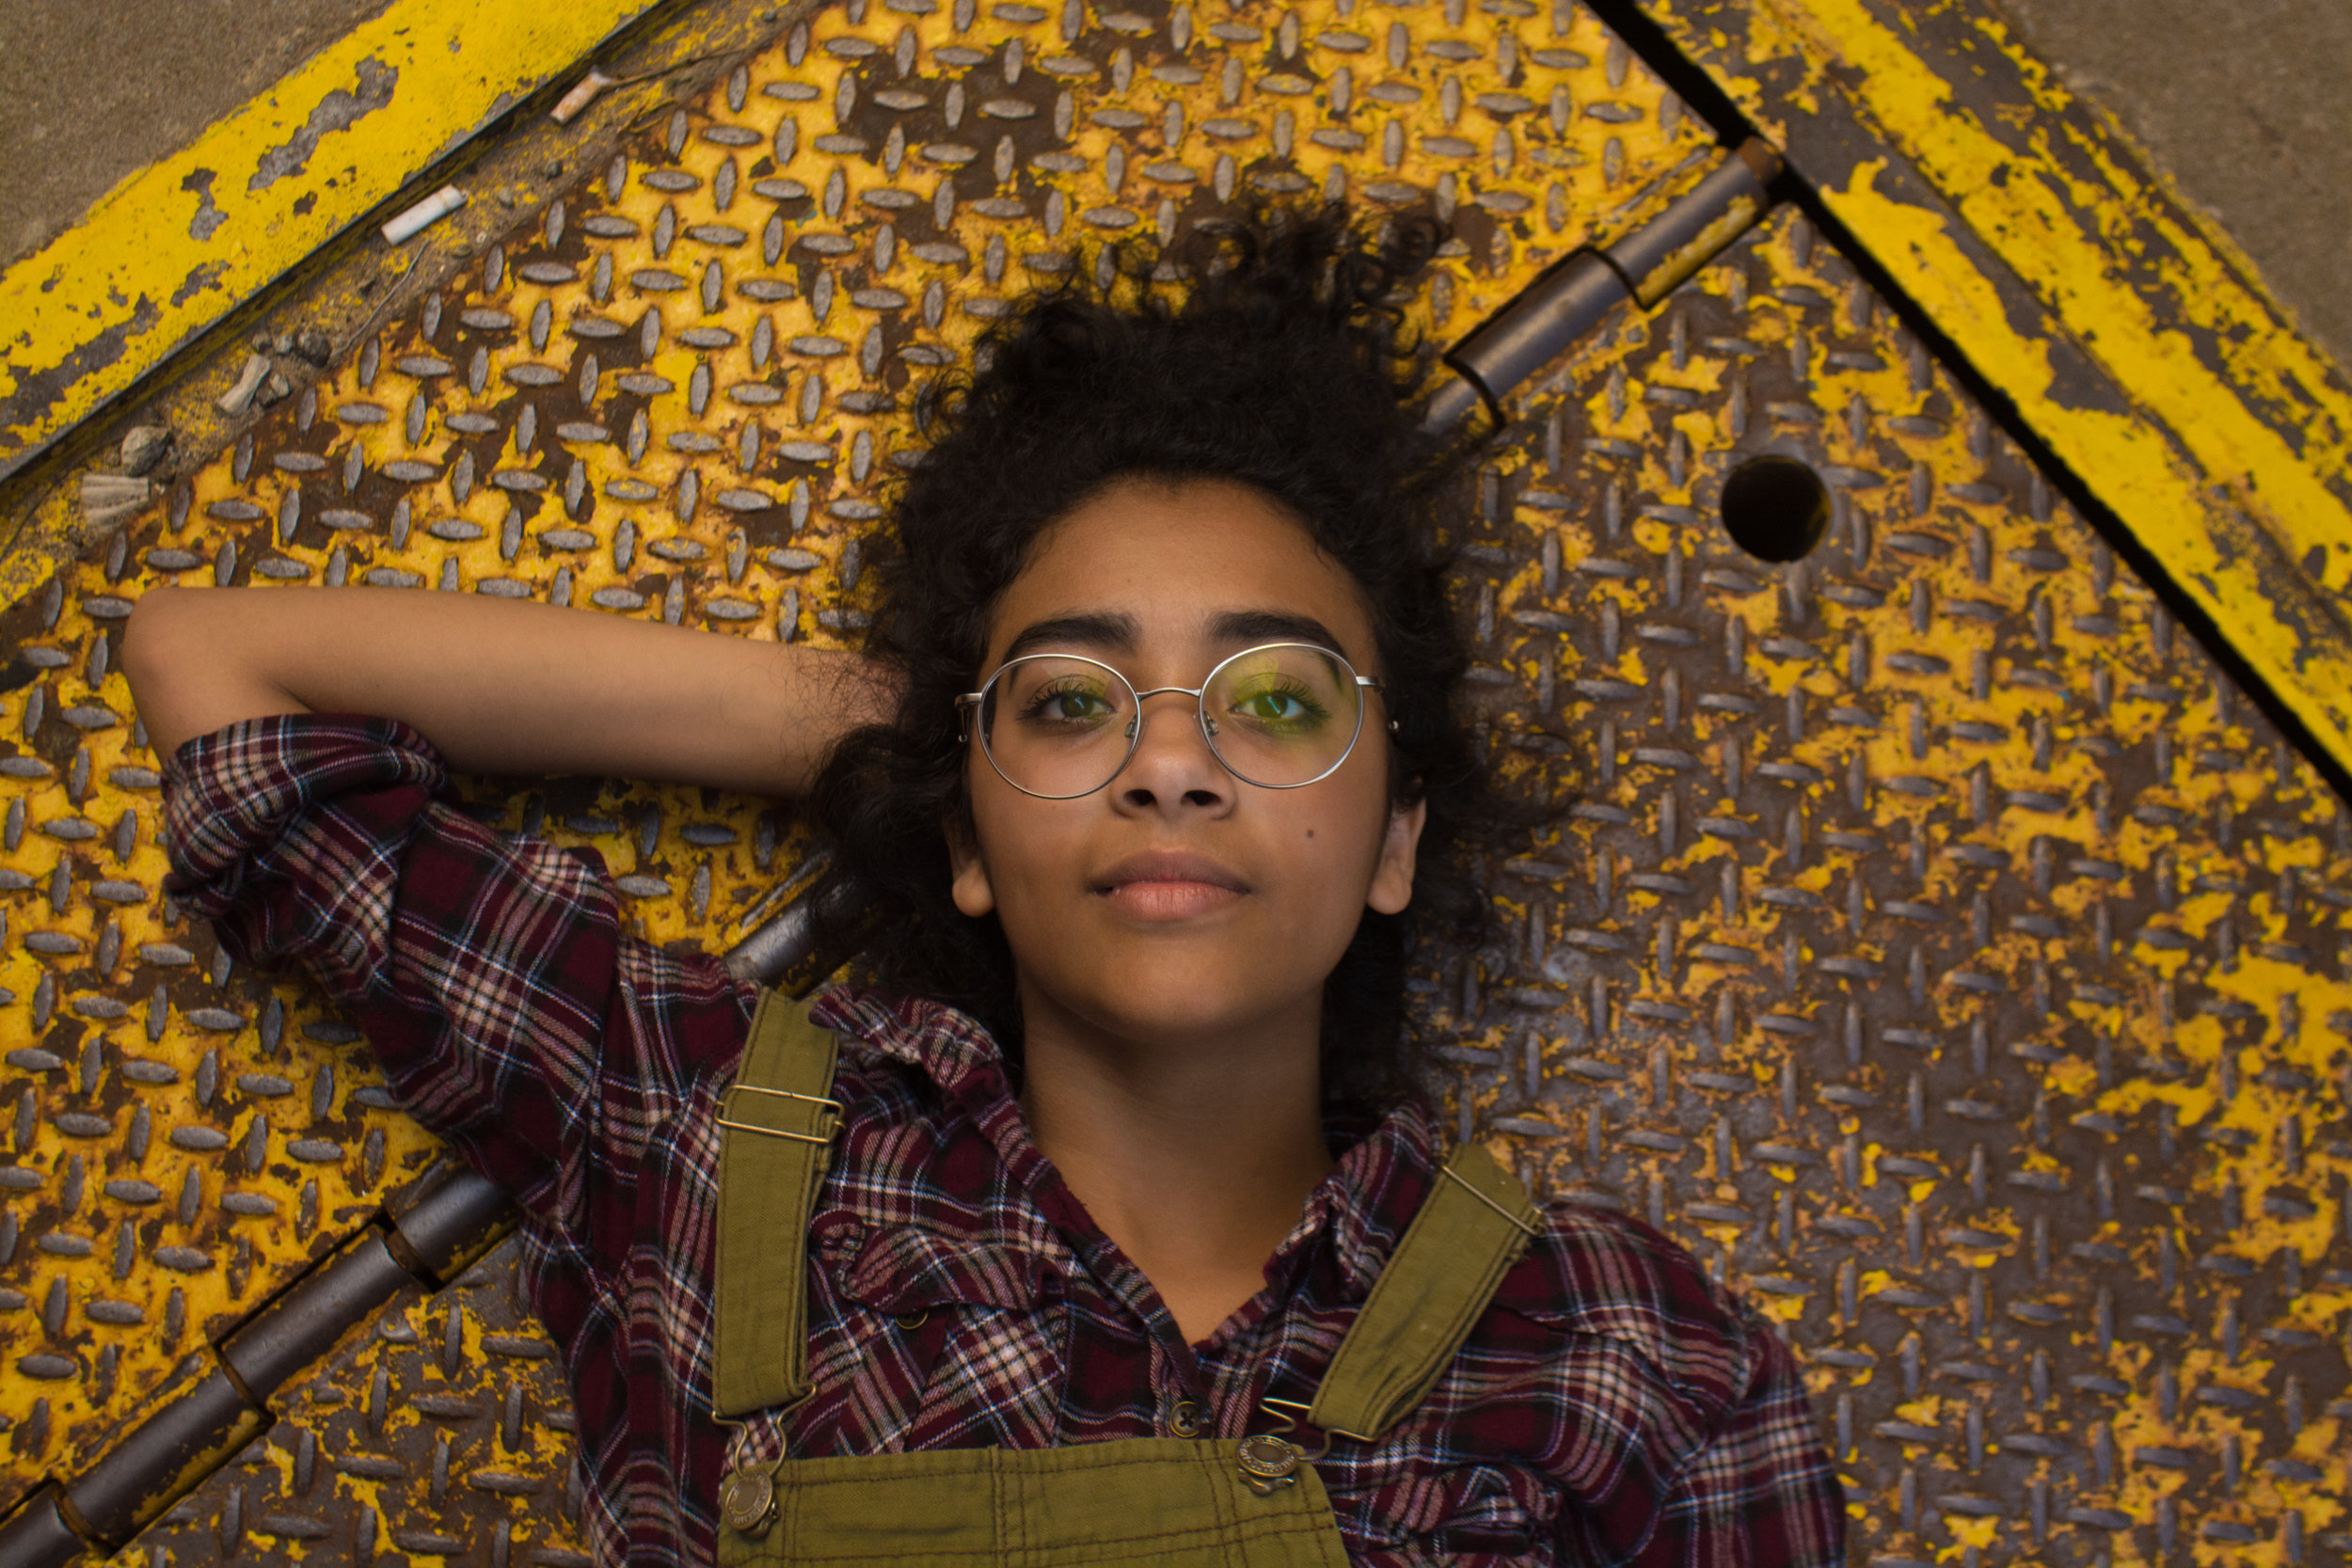 Working woman wearing glasses laying down on a rusted yellow metal floor